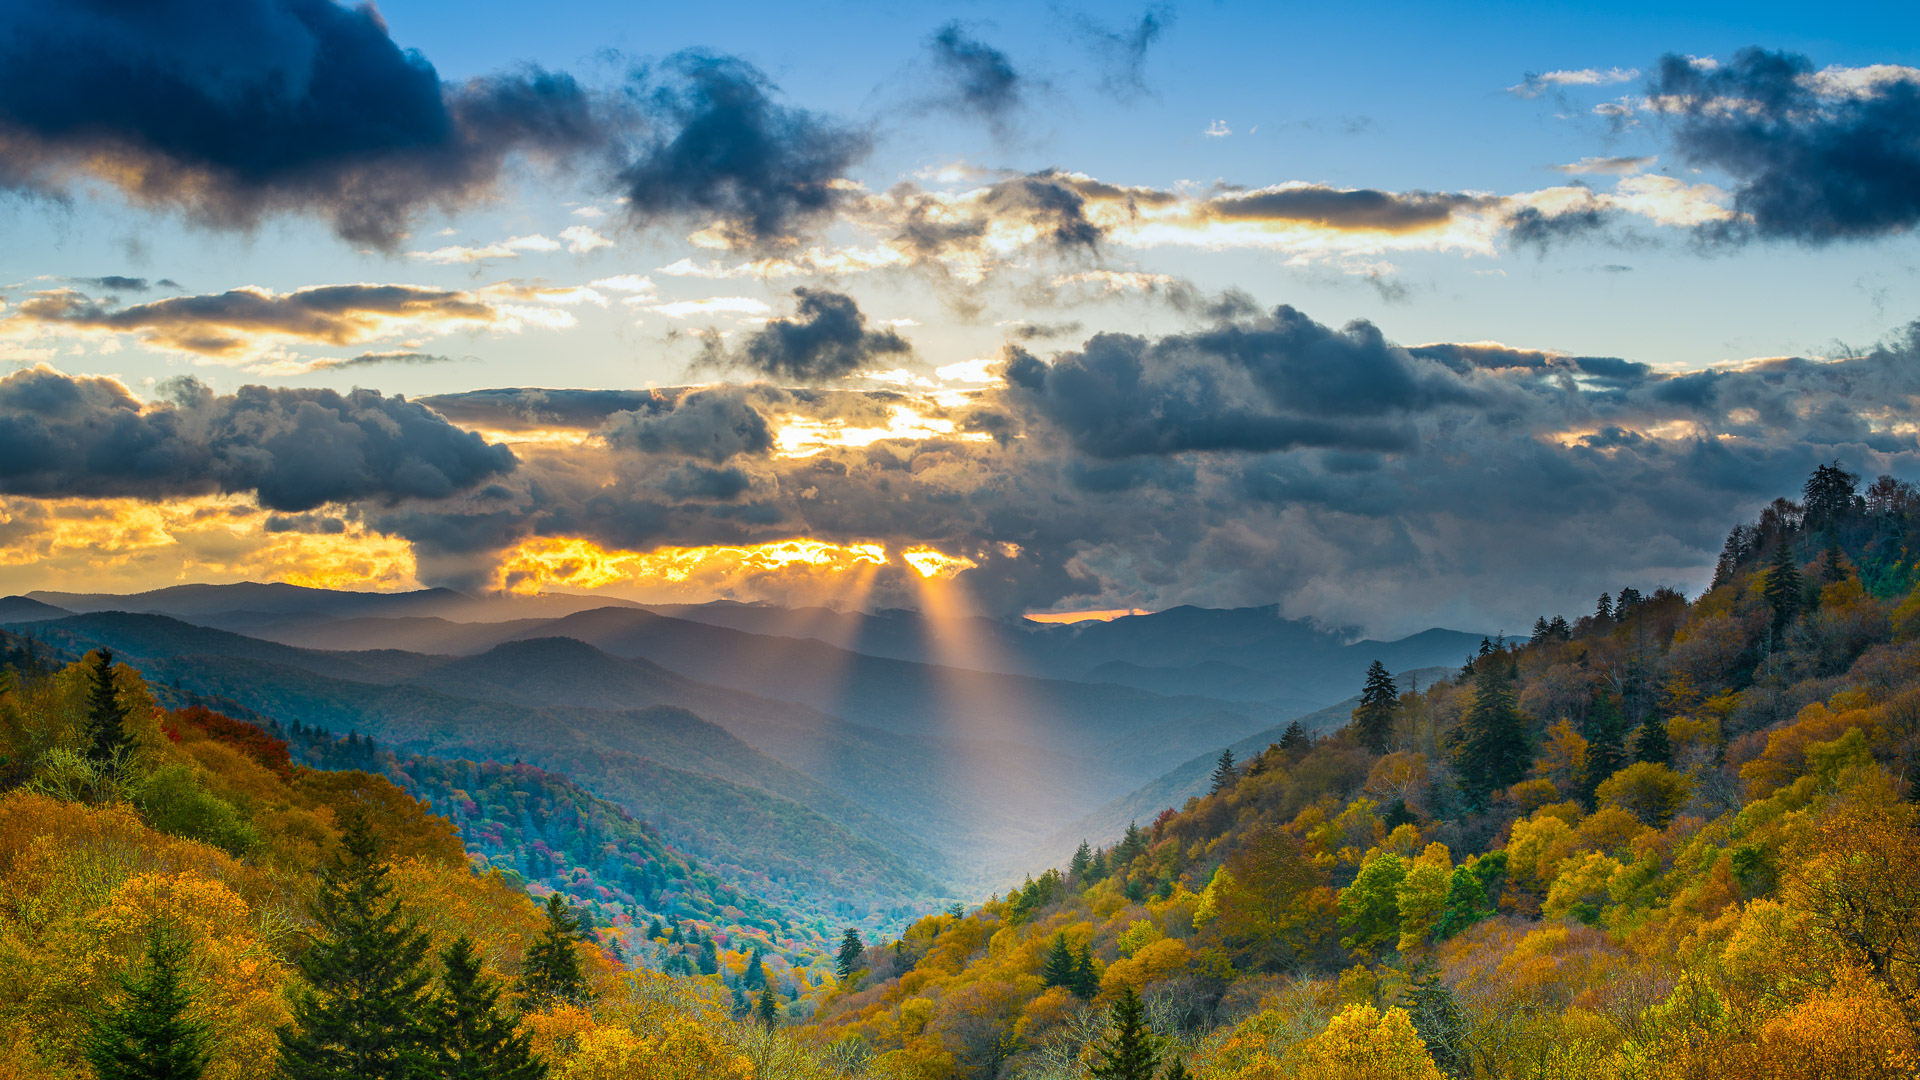 Autumn sunrise in the Smoky Mountains National Park.